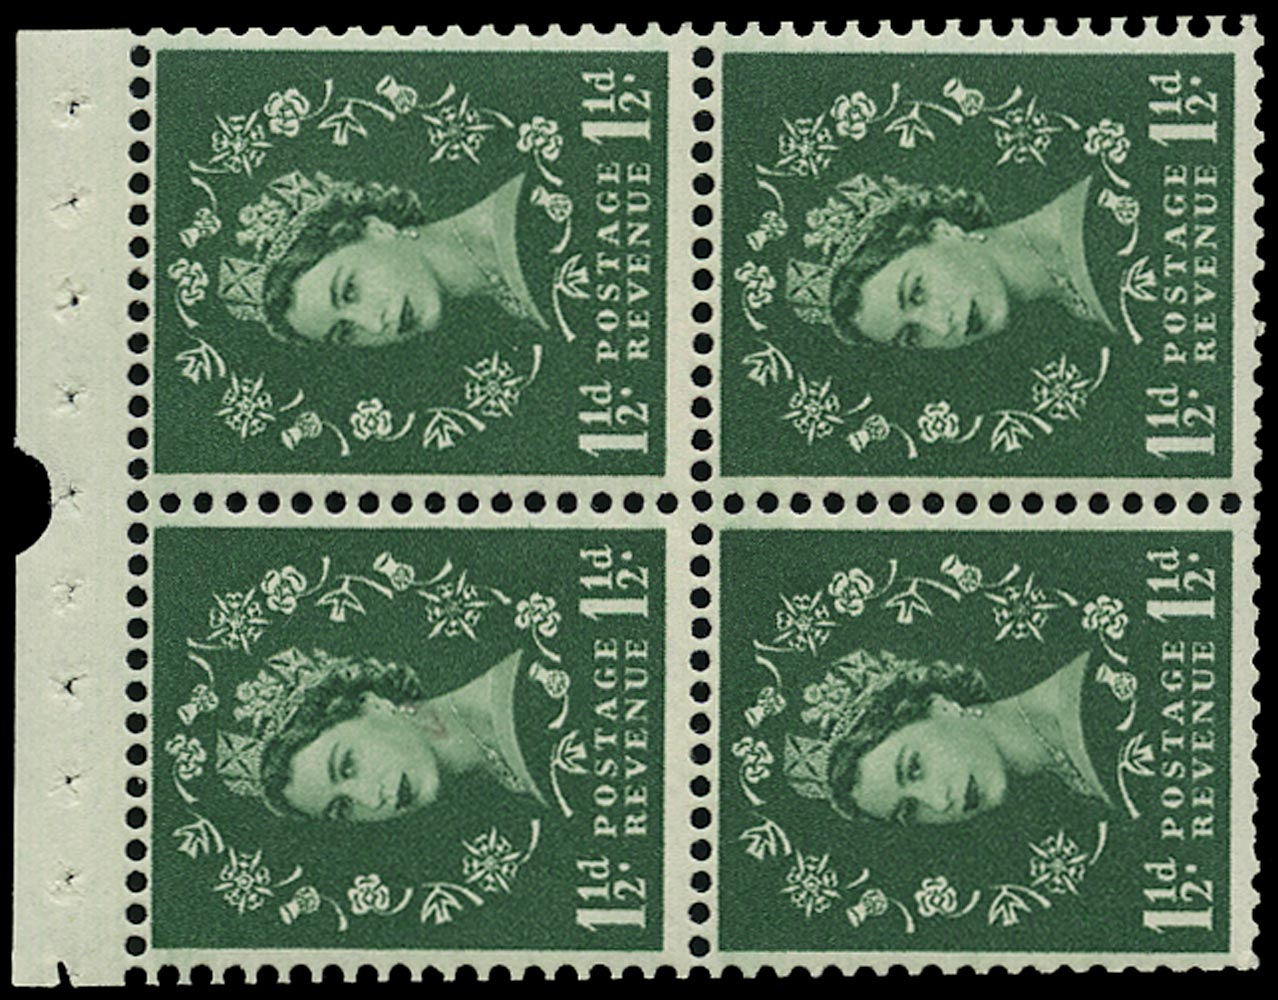 GB 1961  SG572mb Booklet pane - Wmk. Sideways 'Crowns to right', Perf. type I